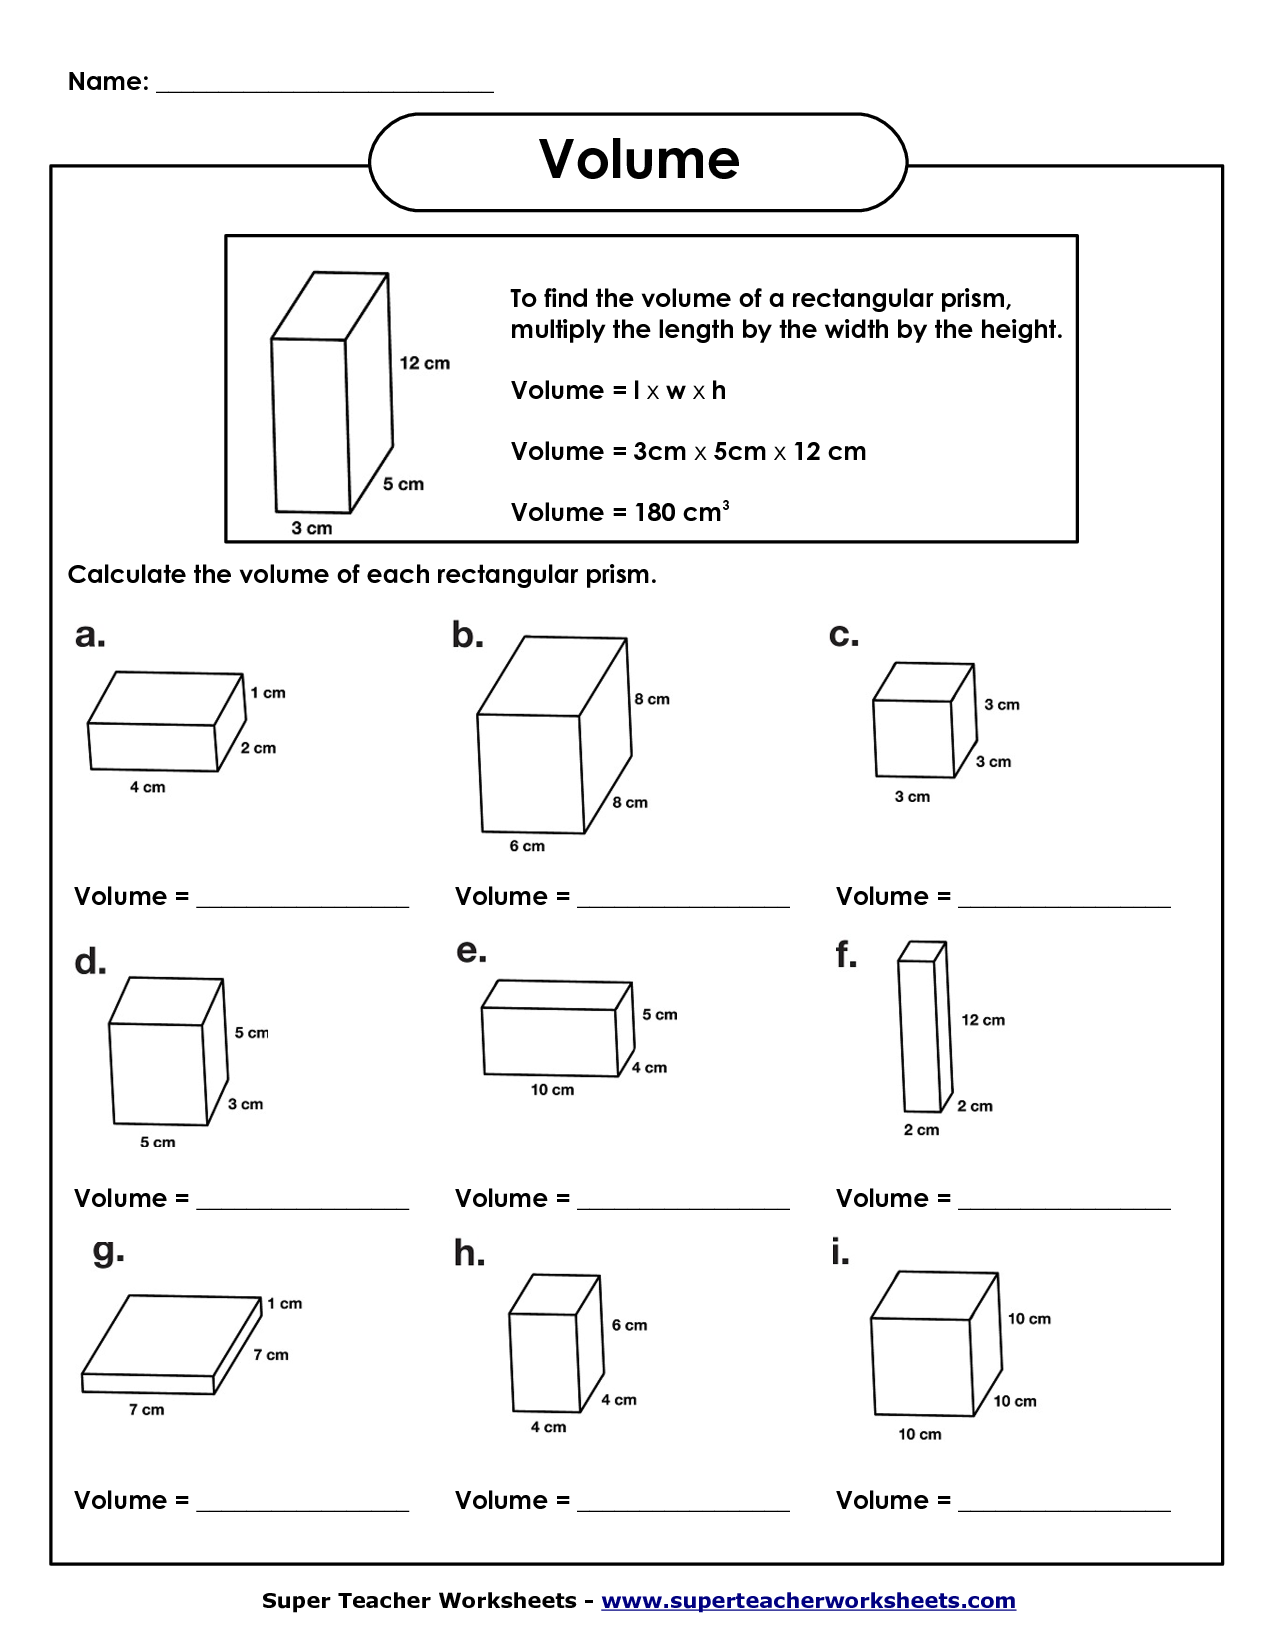 volume of rectangular prism worksheet | Volume Worksheets